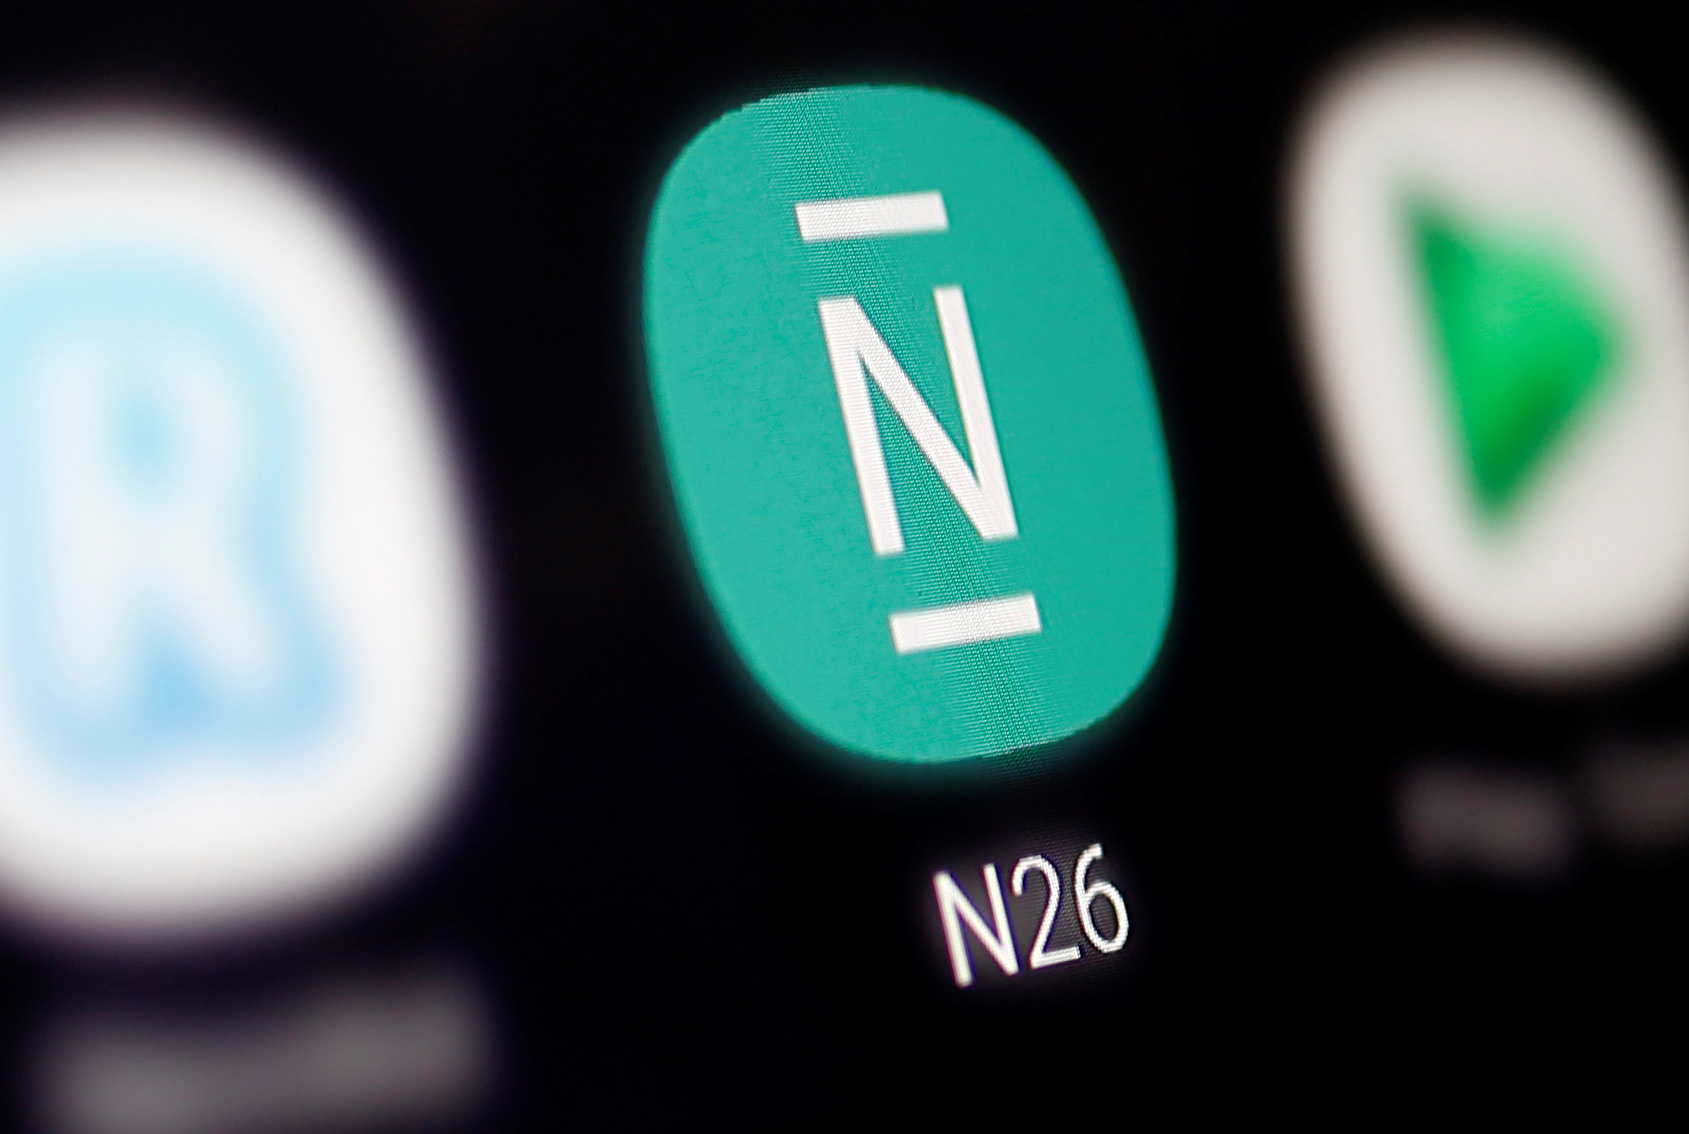 A N26 logo is seen in this illustration taken January 6, 2020. REUTERS/Dado Ruvic/Illustration